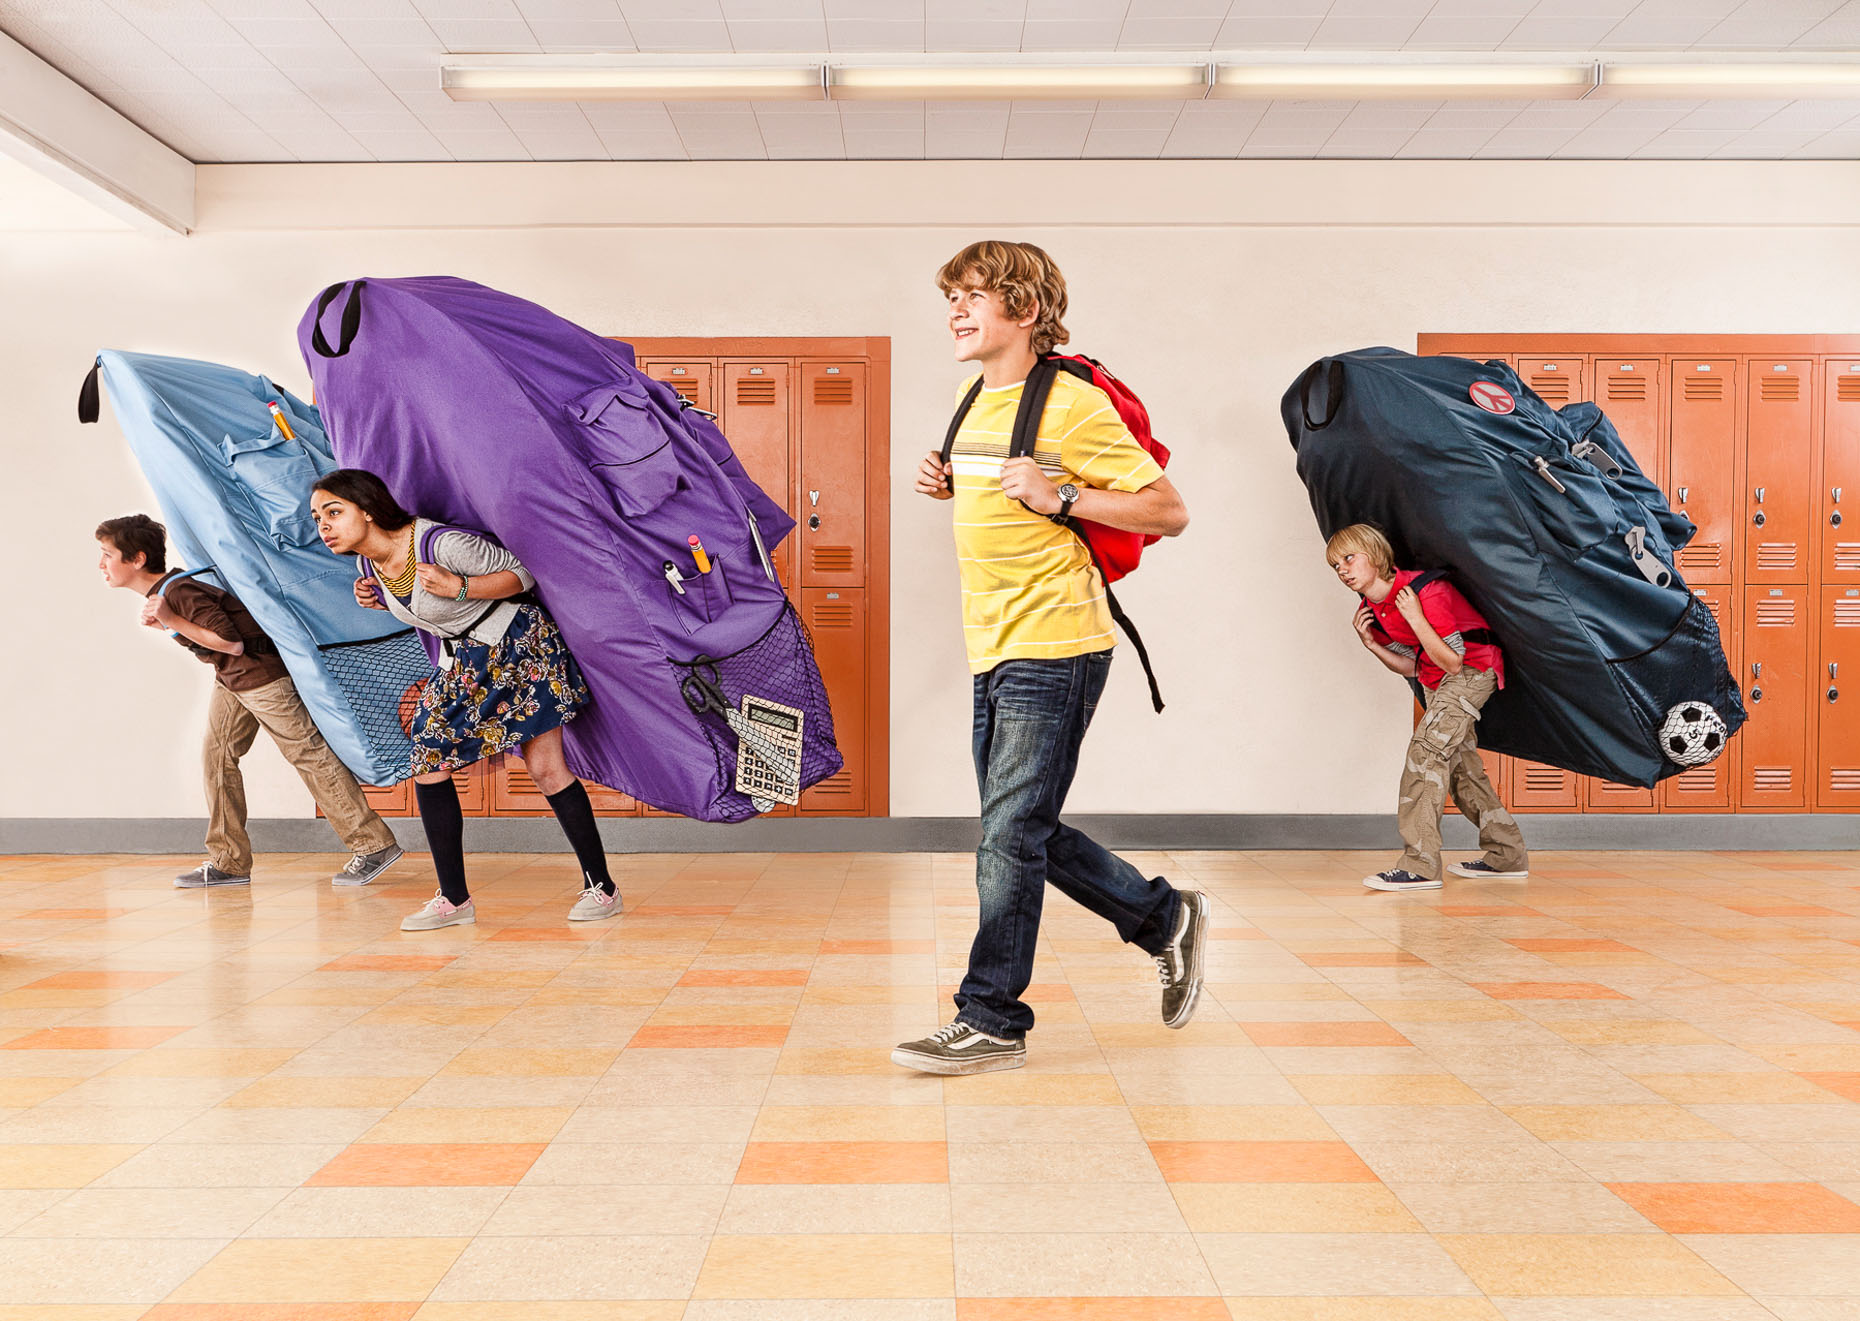 boy with normal sized book bag is smiling while other students are burdened with oversized book bags by David Zaitz